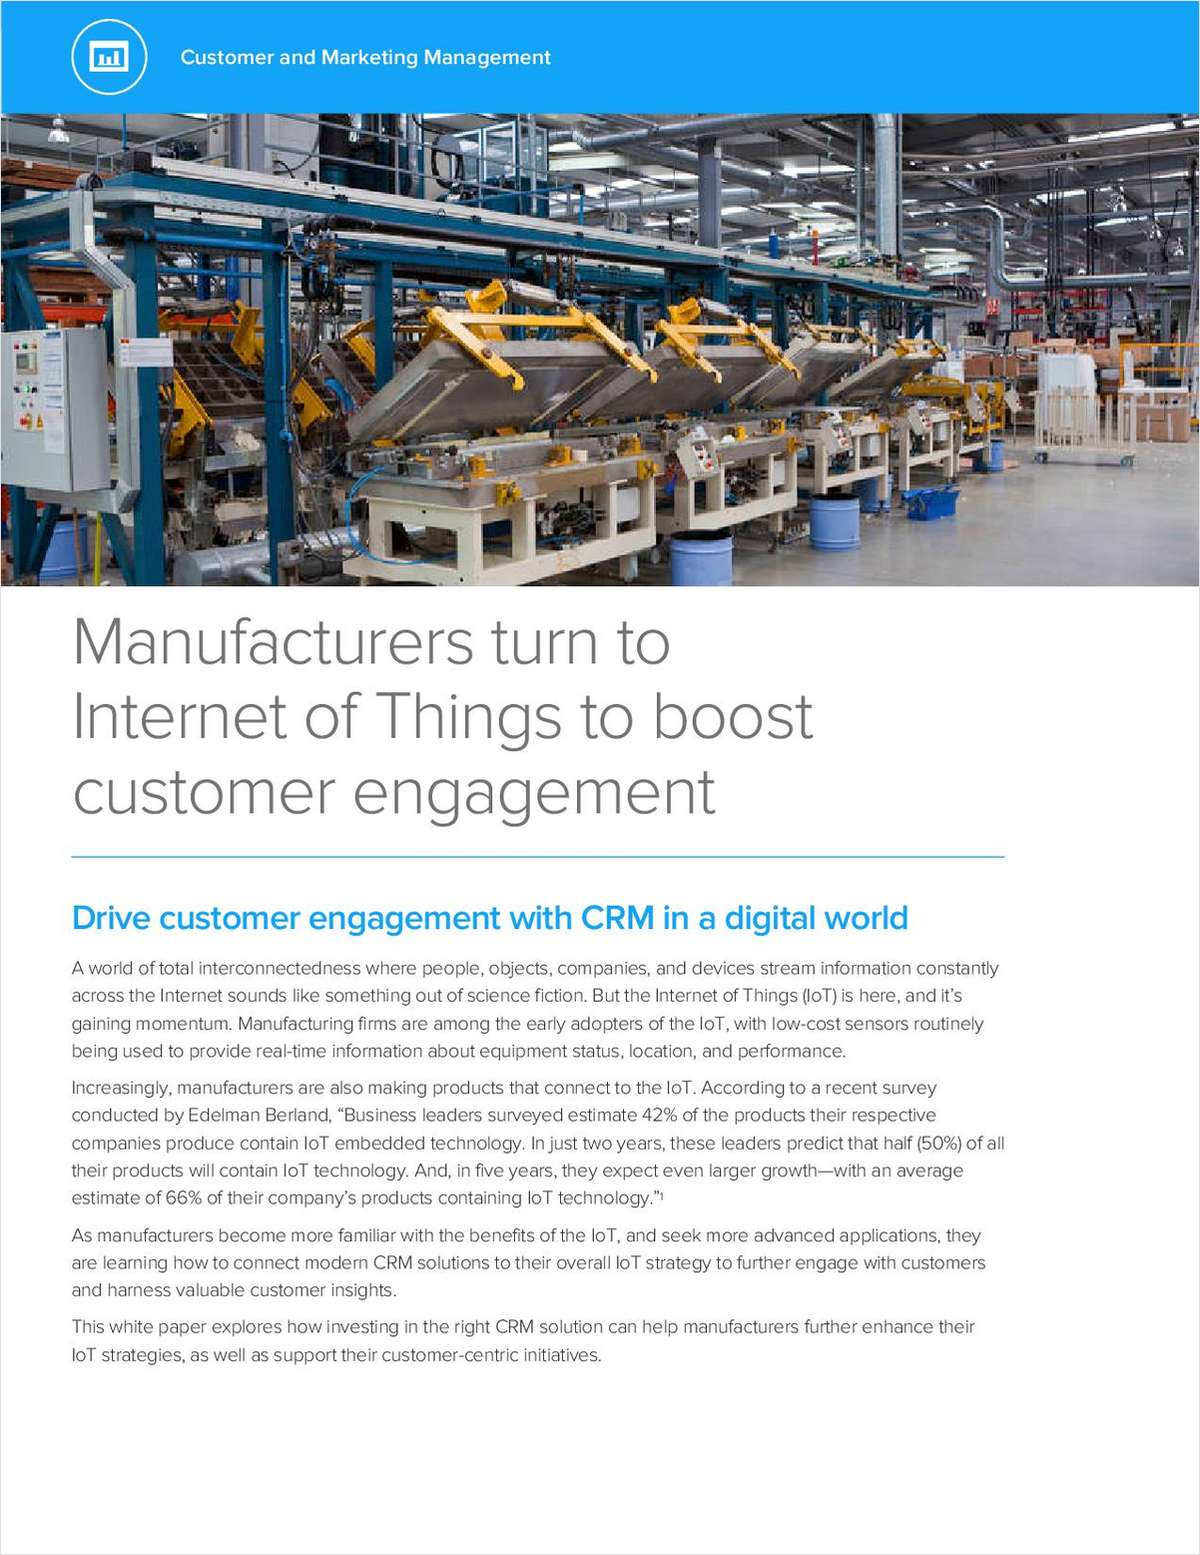 Manufacturers Turn to Internet of Things to Boost Customer Engagement